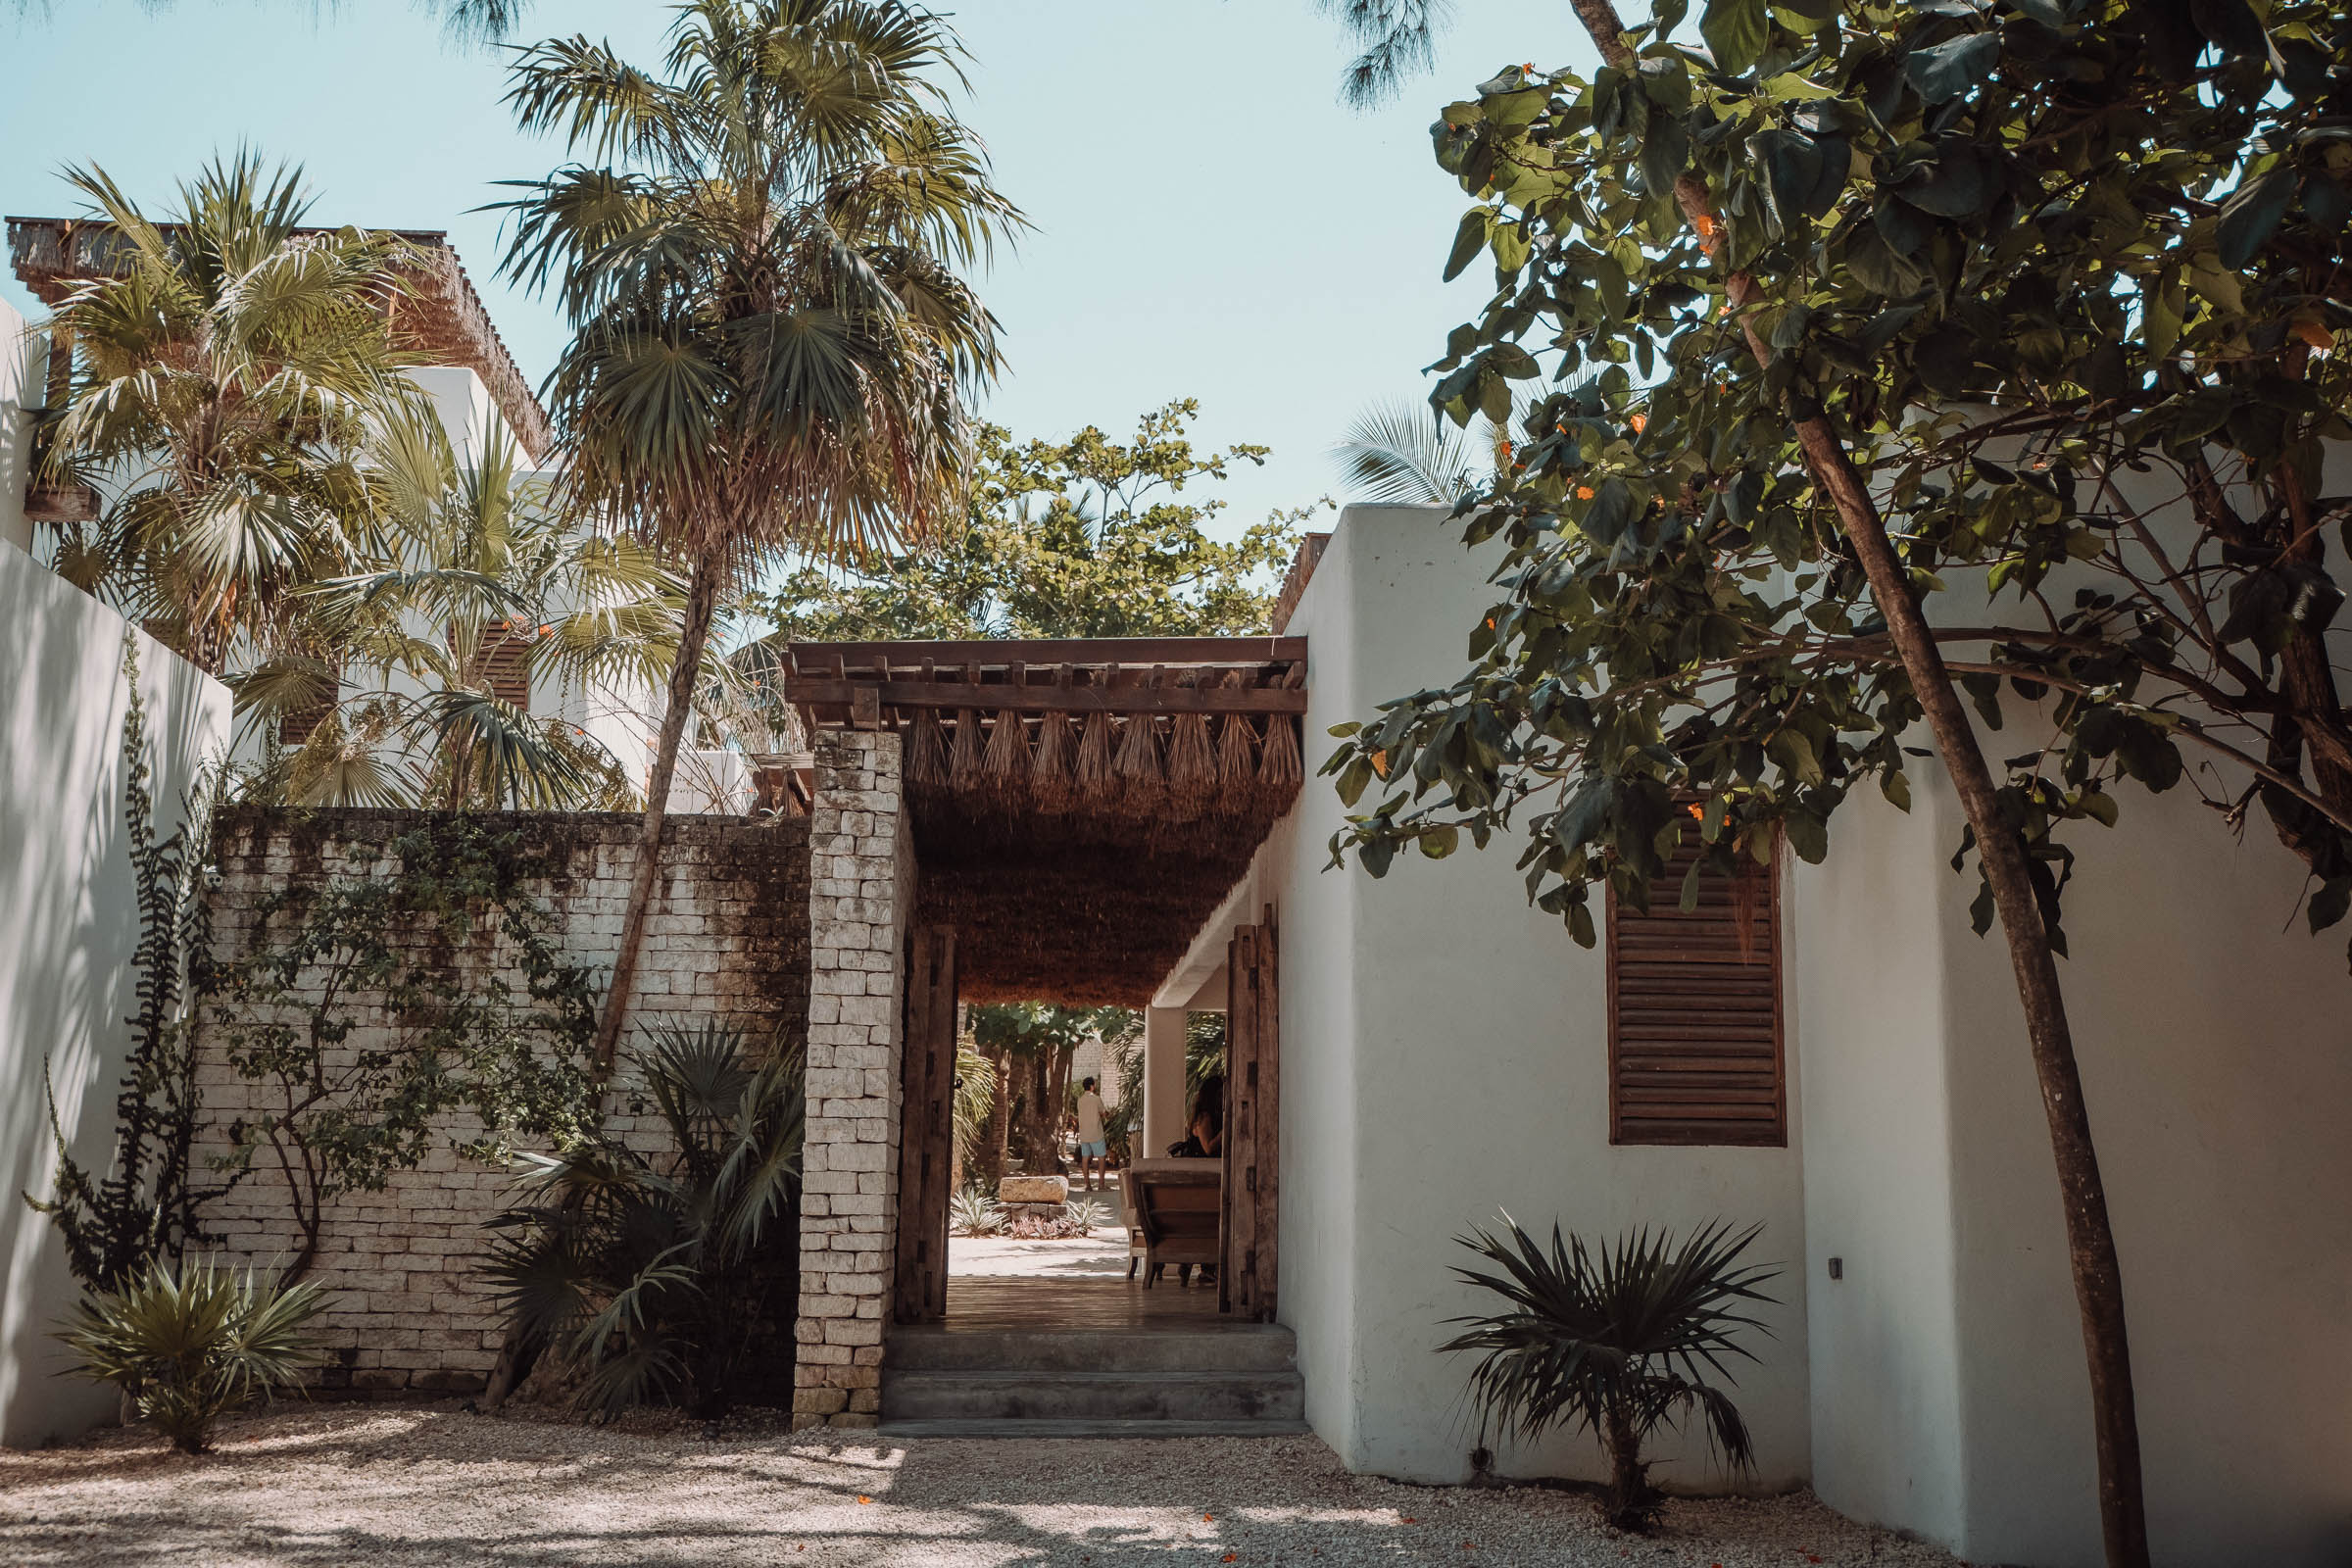 Chacon Images_Mexico2019_Web-67.jpg